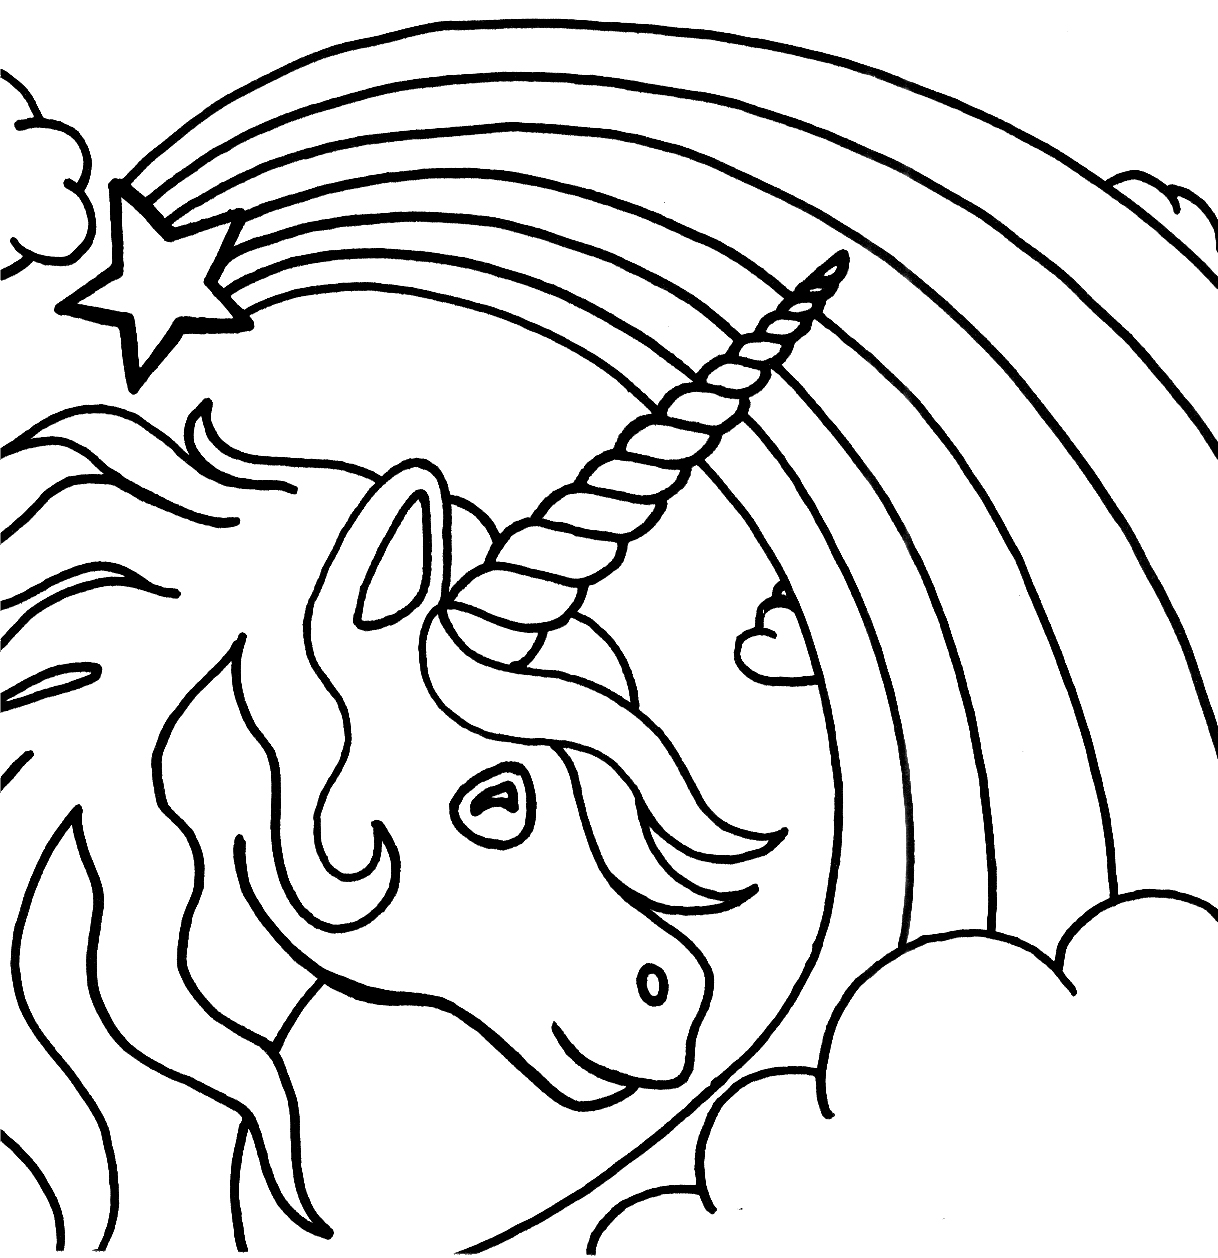 Unicorn_Coloring_Pages_01